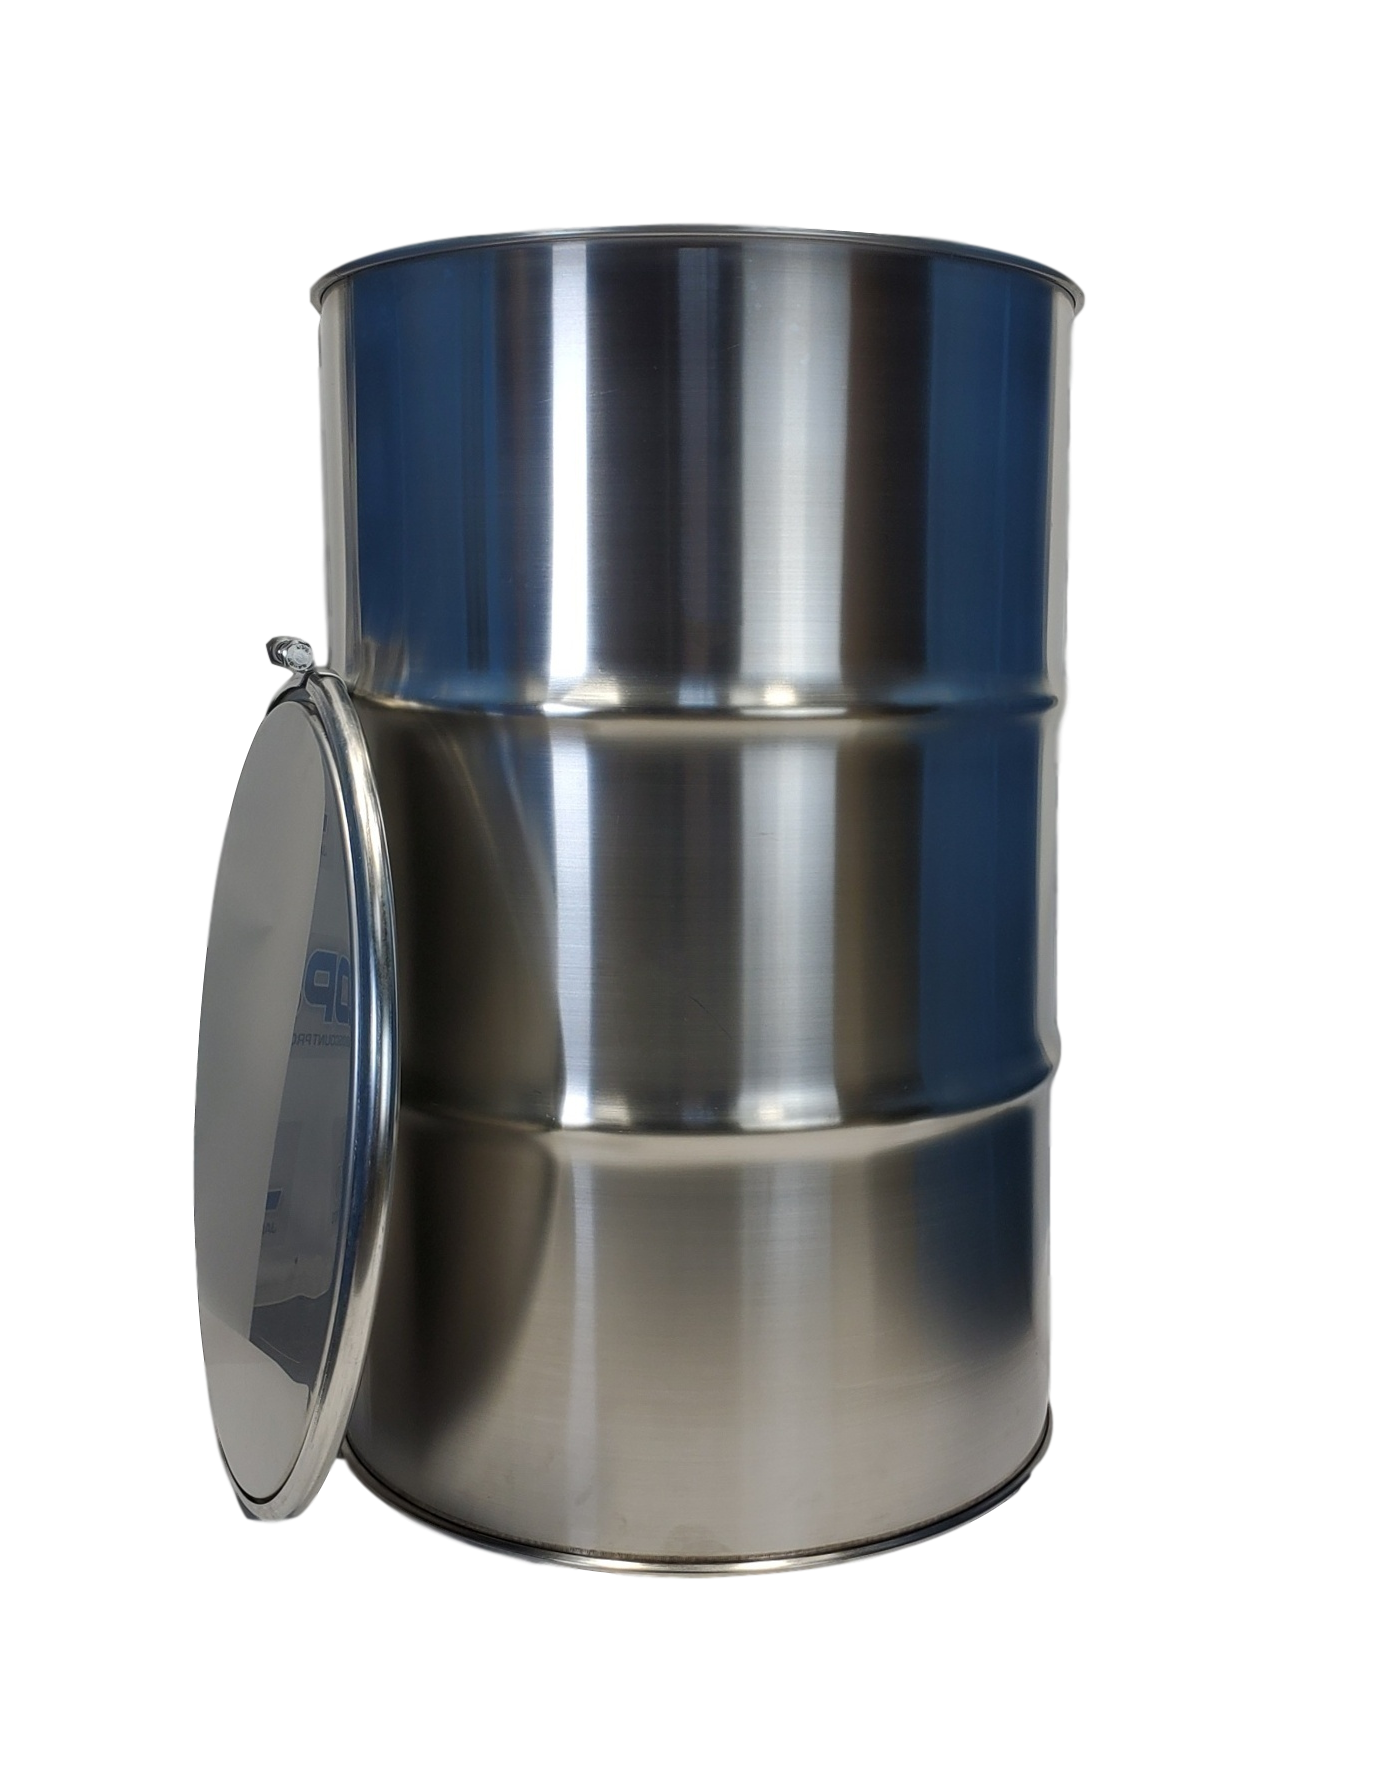 New Open Top Stainless Steel Barrels In Stock And Ready To Ship Next Day We Have Many Variations To Help Me In 2020 Steel Barrel Stainless Steel Drum Barrels For Sale